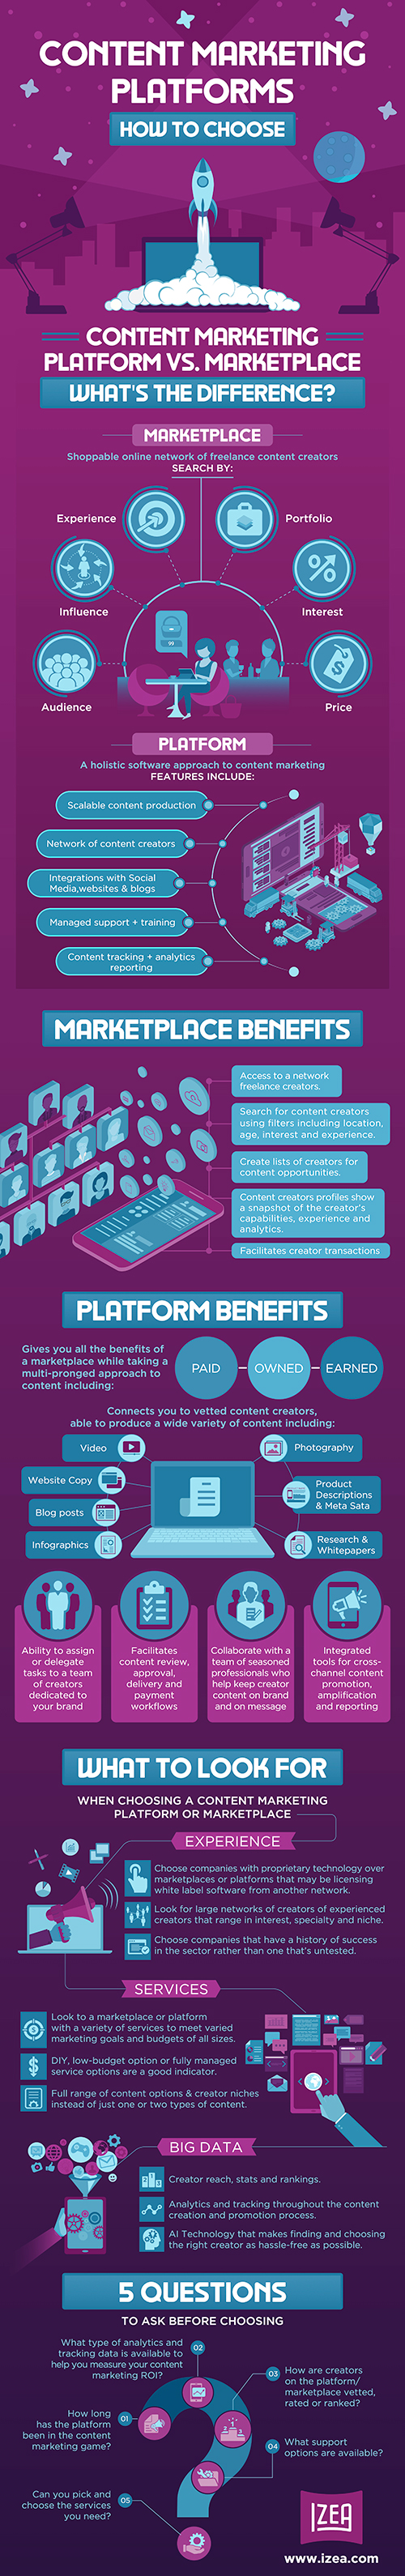 Infographic - Content Marketing Platforms WEB